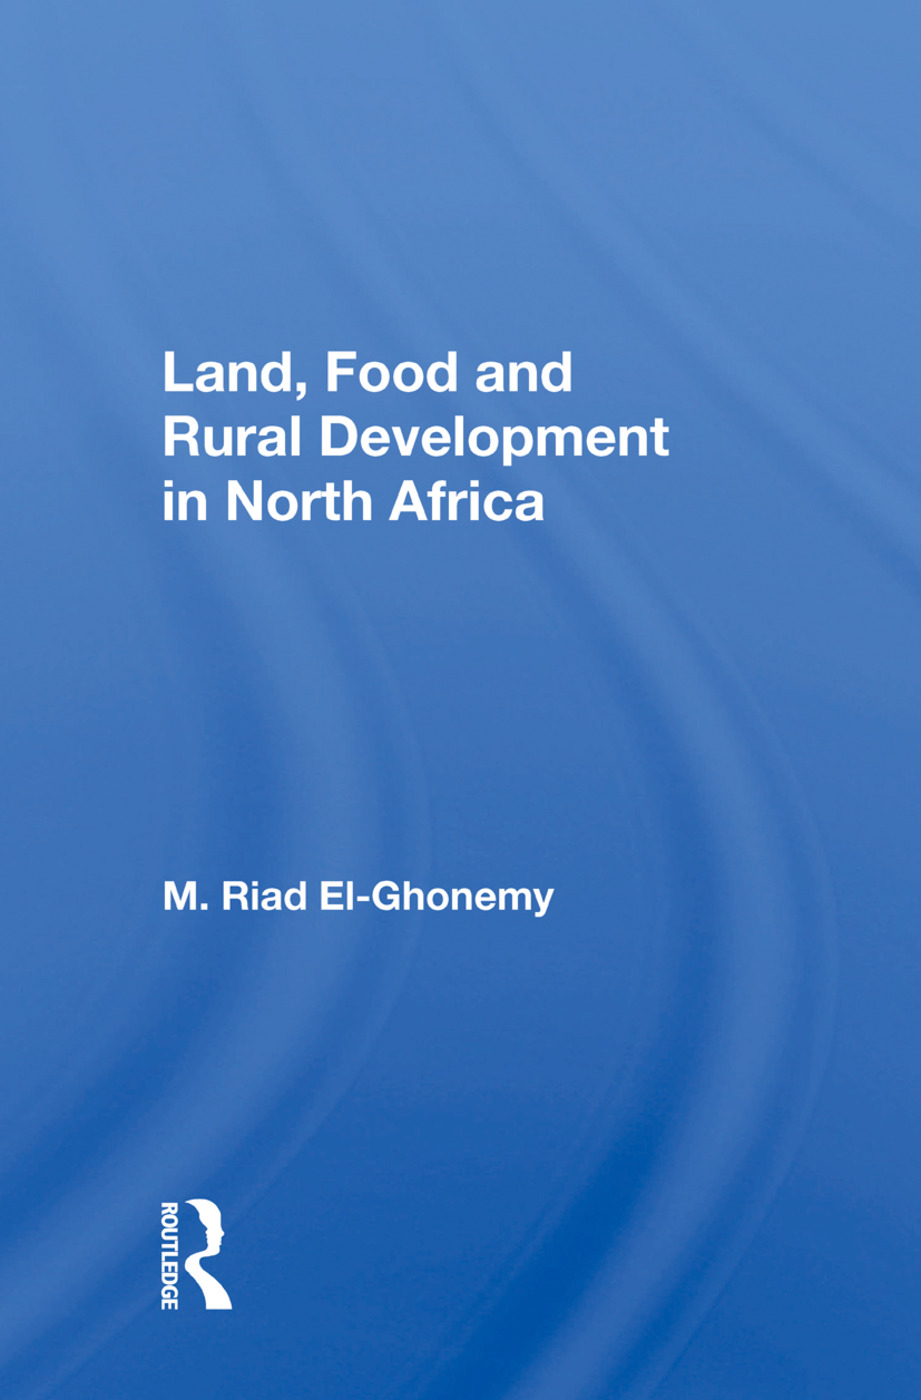 Land, Food And Rural Development In North Africa: 1st Edition (Paperback) book cover